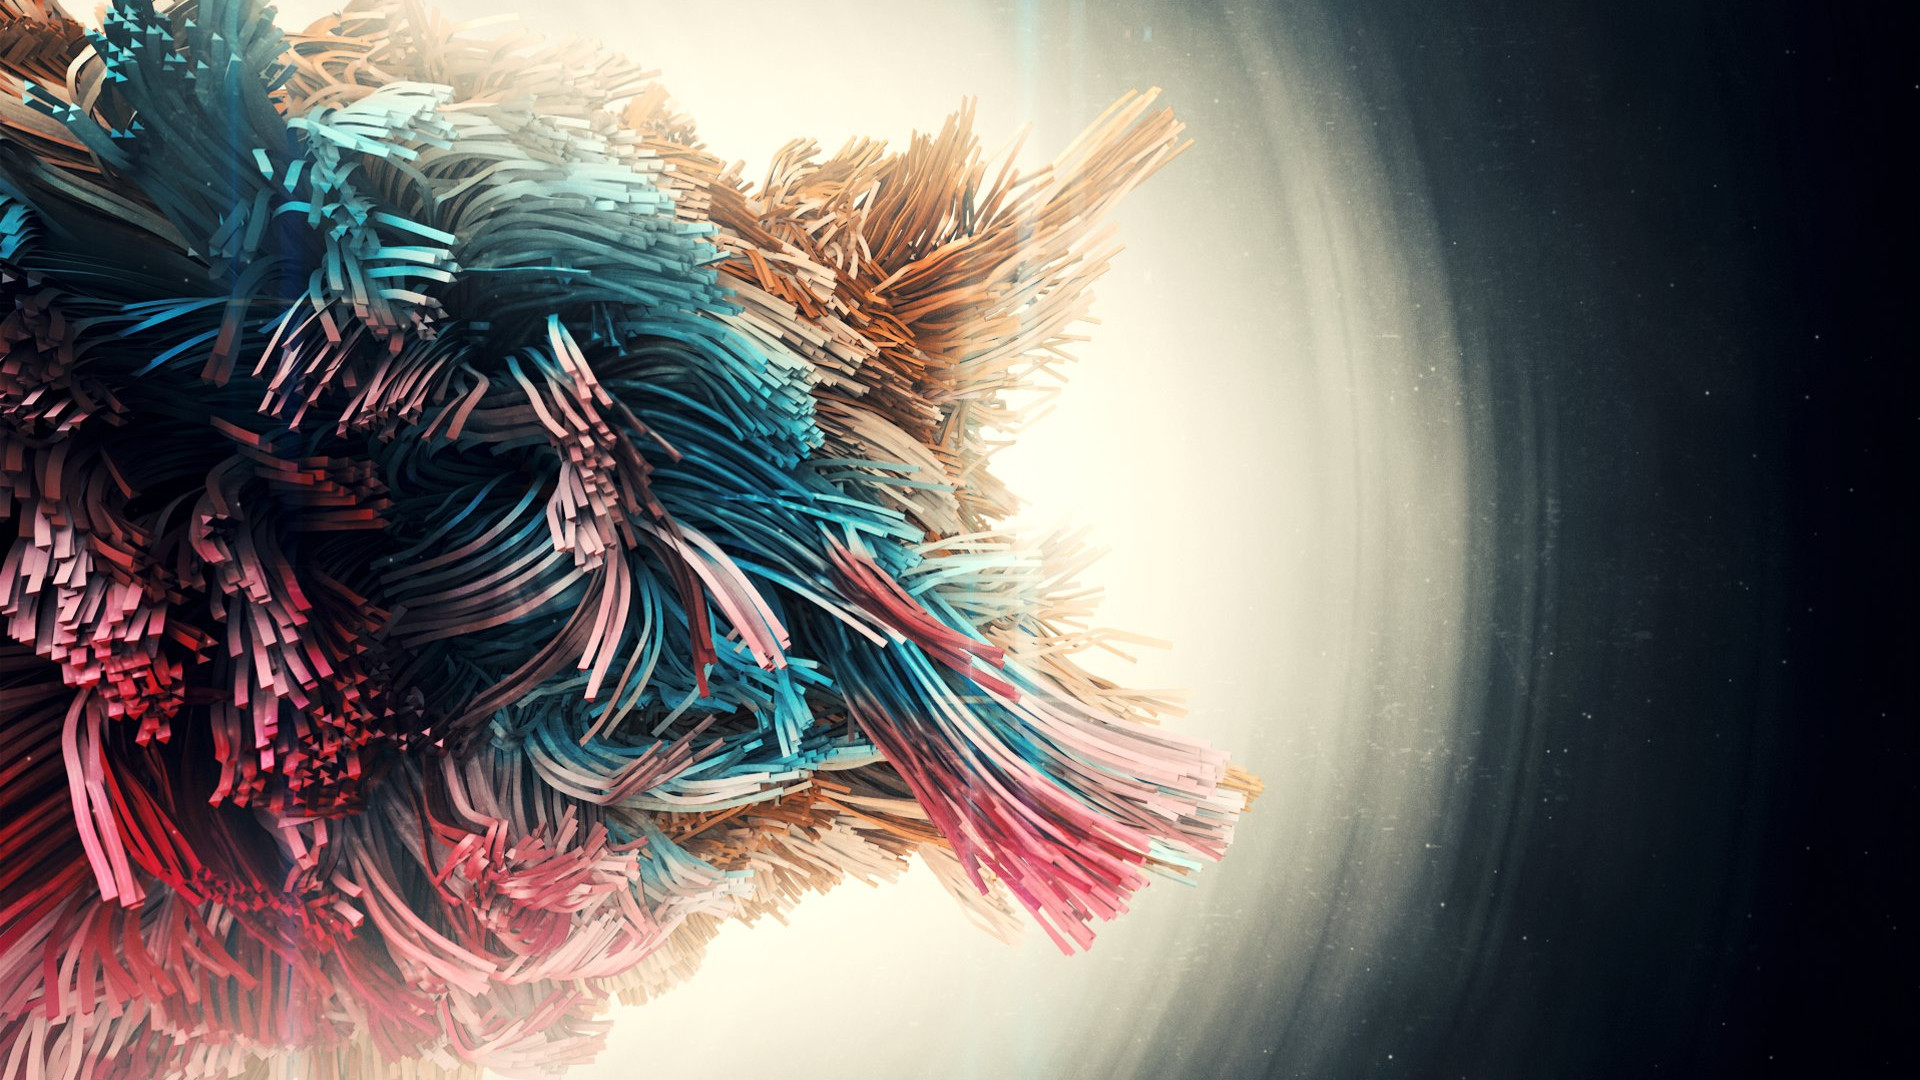 Download Wallpaper Beings Abstract Art 1920x1080